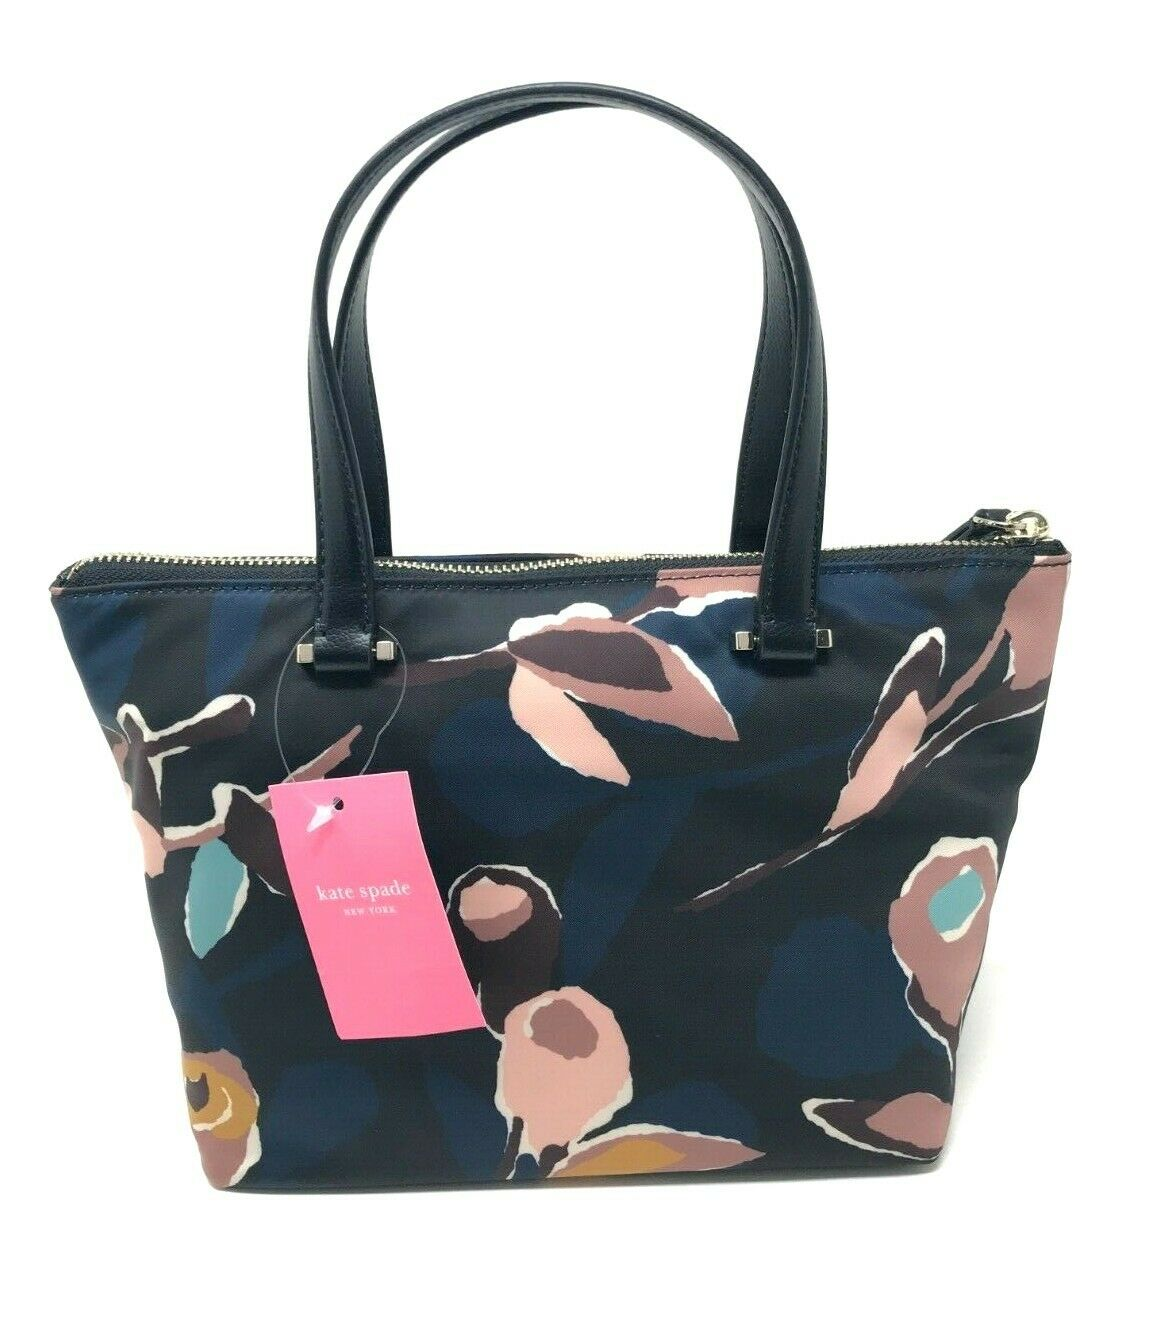 Kate Spade Insulated Tote Dawn Nylon Paper Rose Black Multi WKRU5996 $119